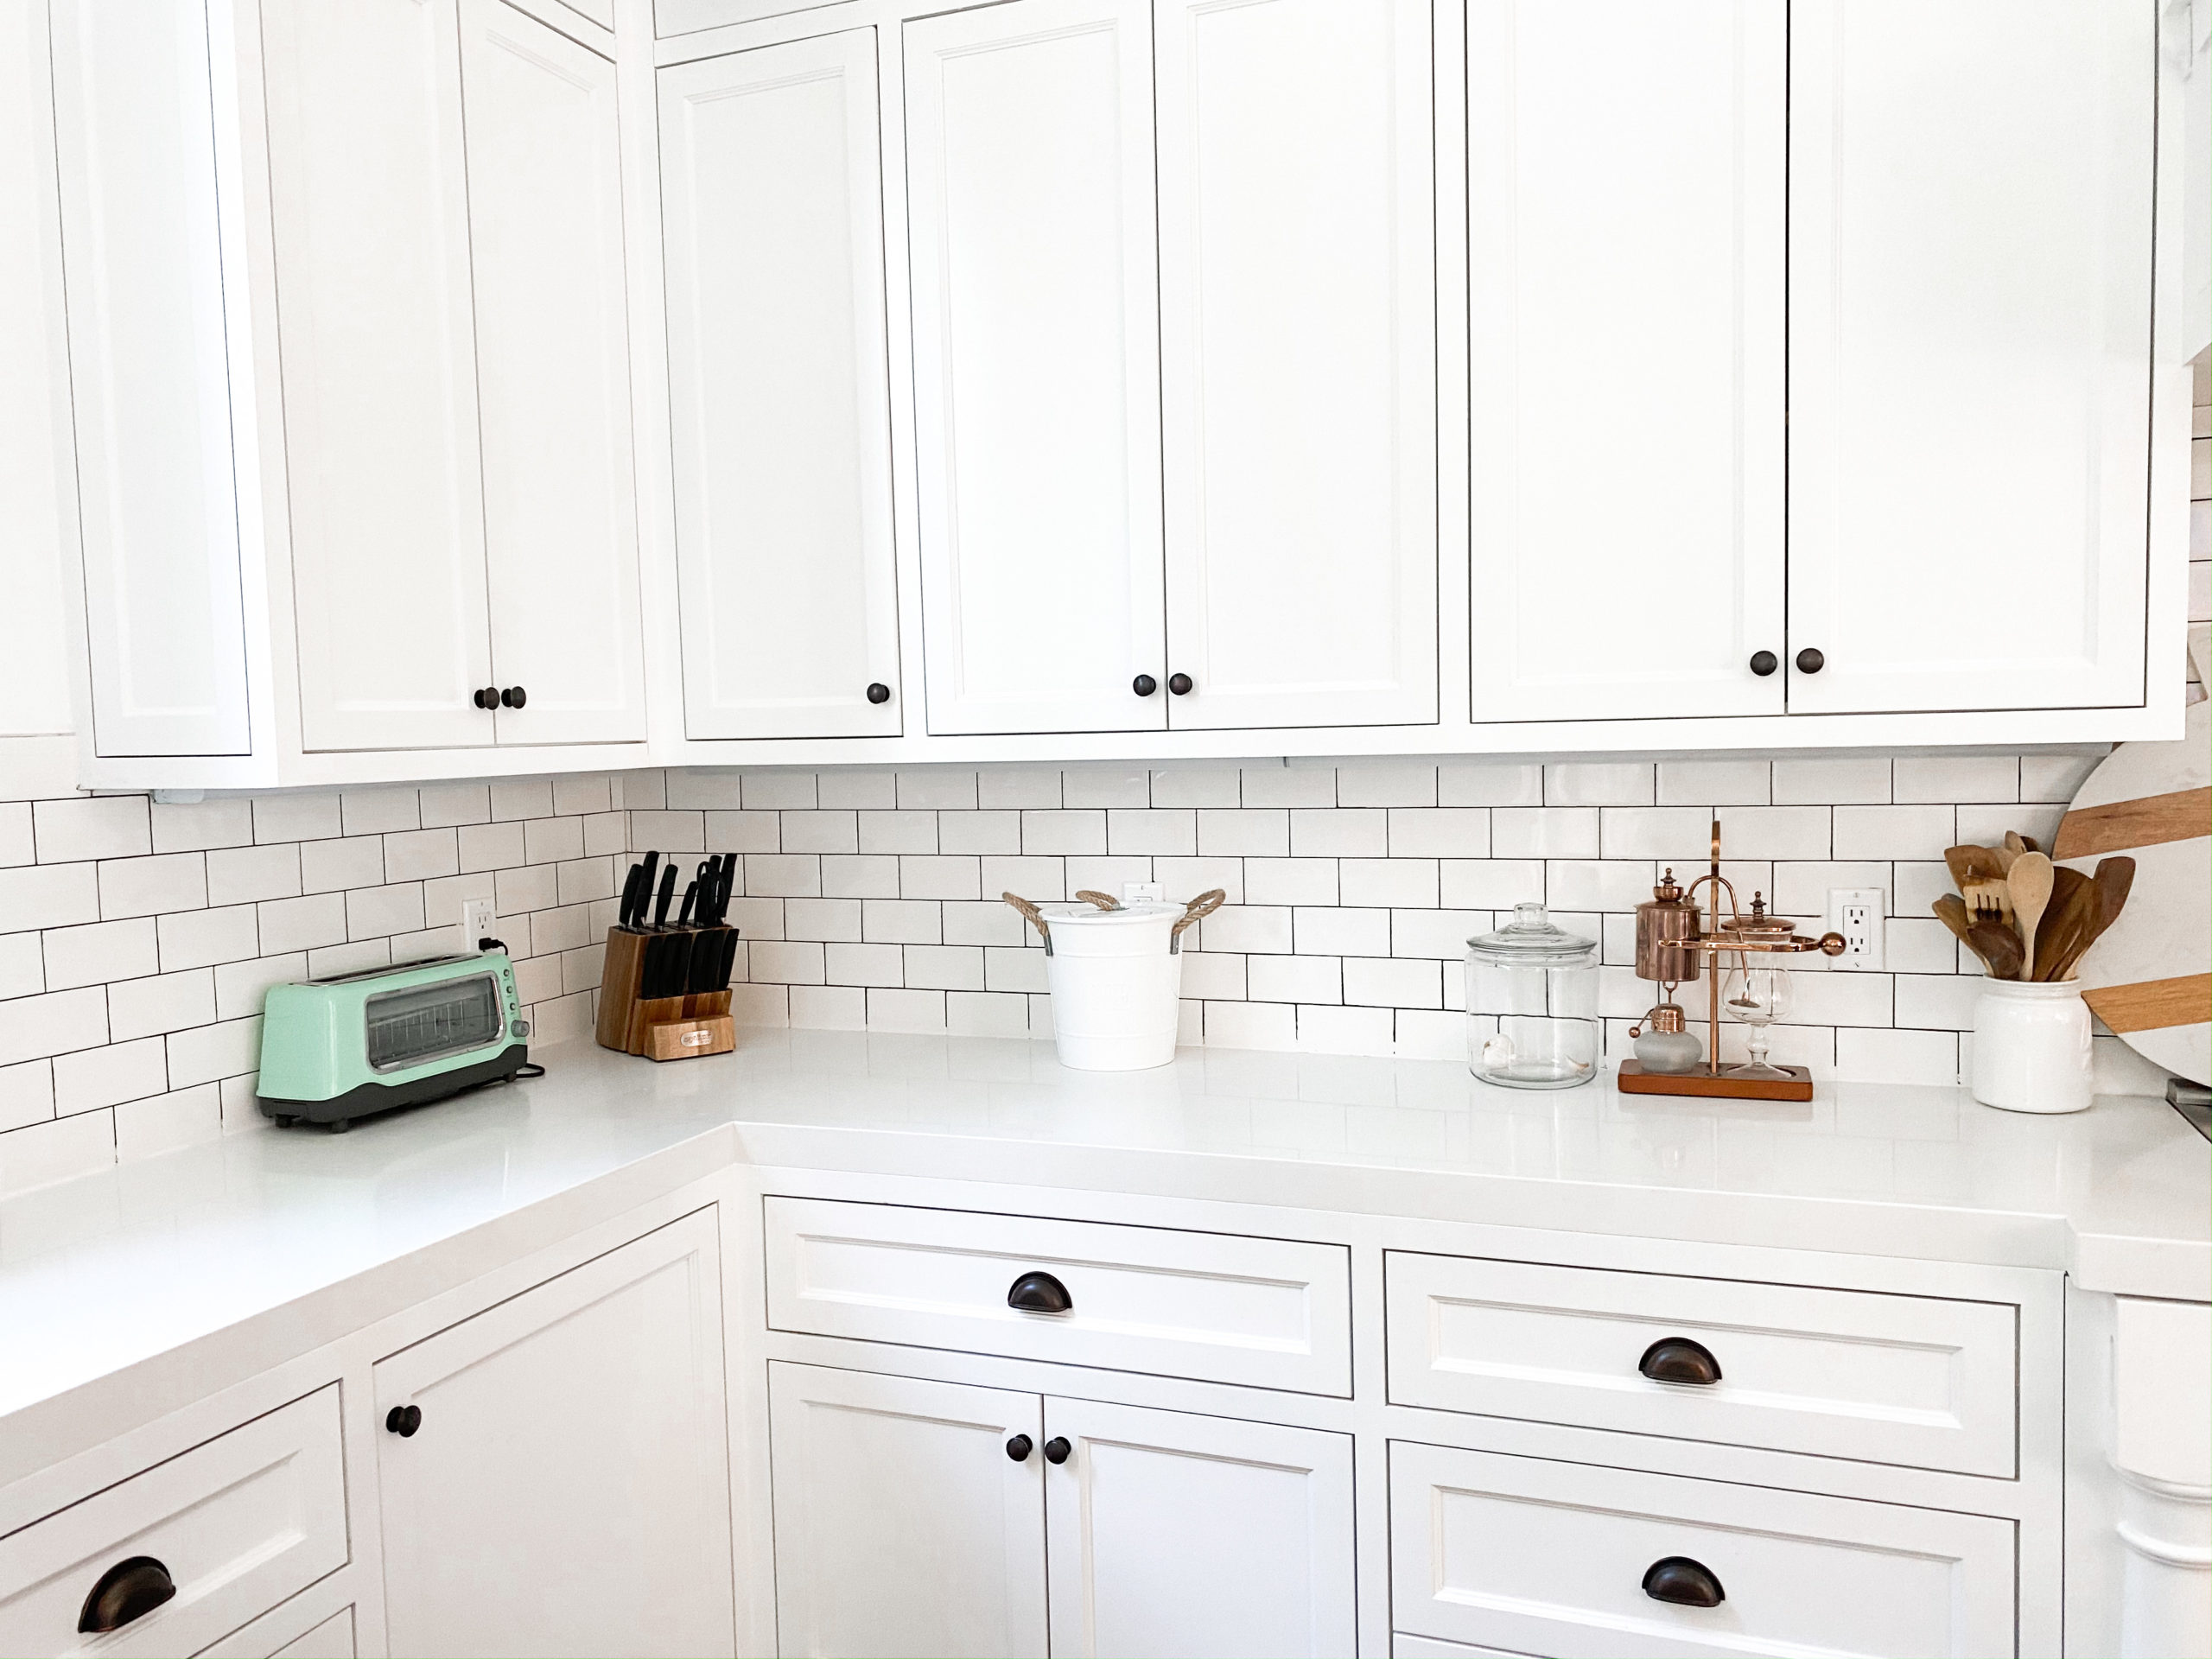 how to do grout stain in kitchen